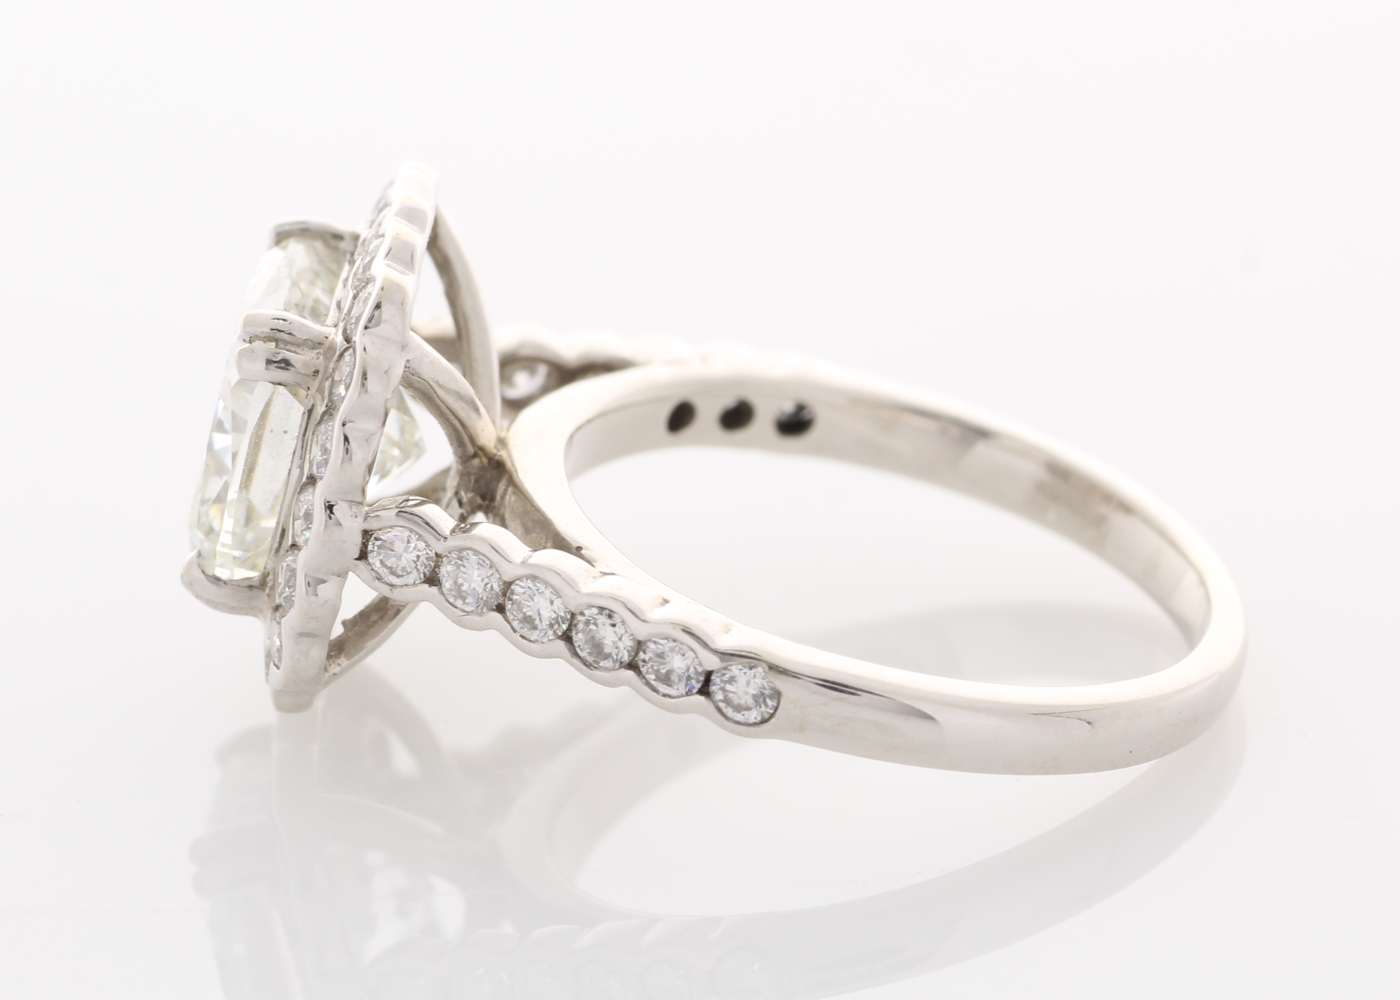 Lot 39 - 18ct White Gold Single Stone With Halo Setting Ring 3.19